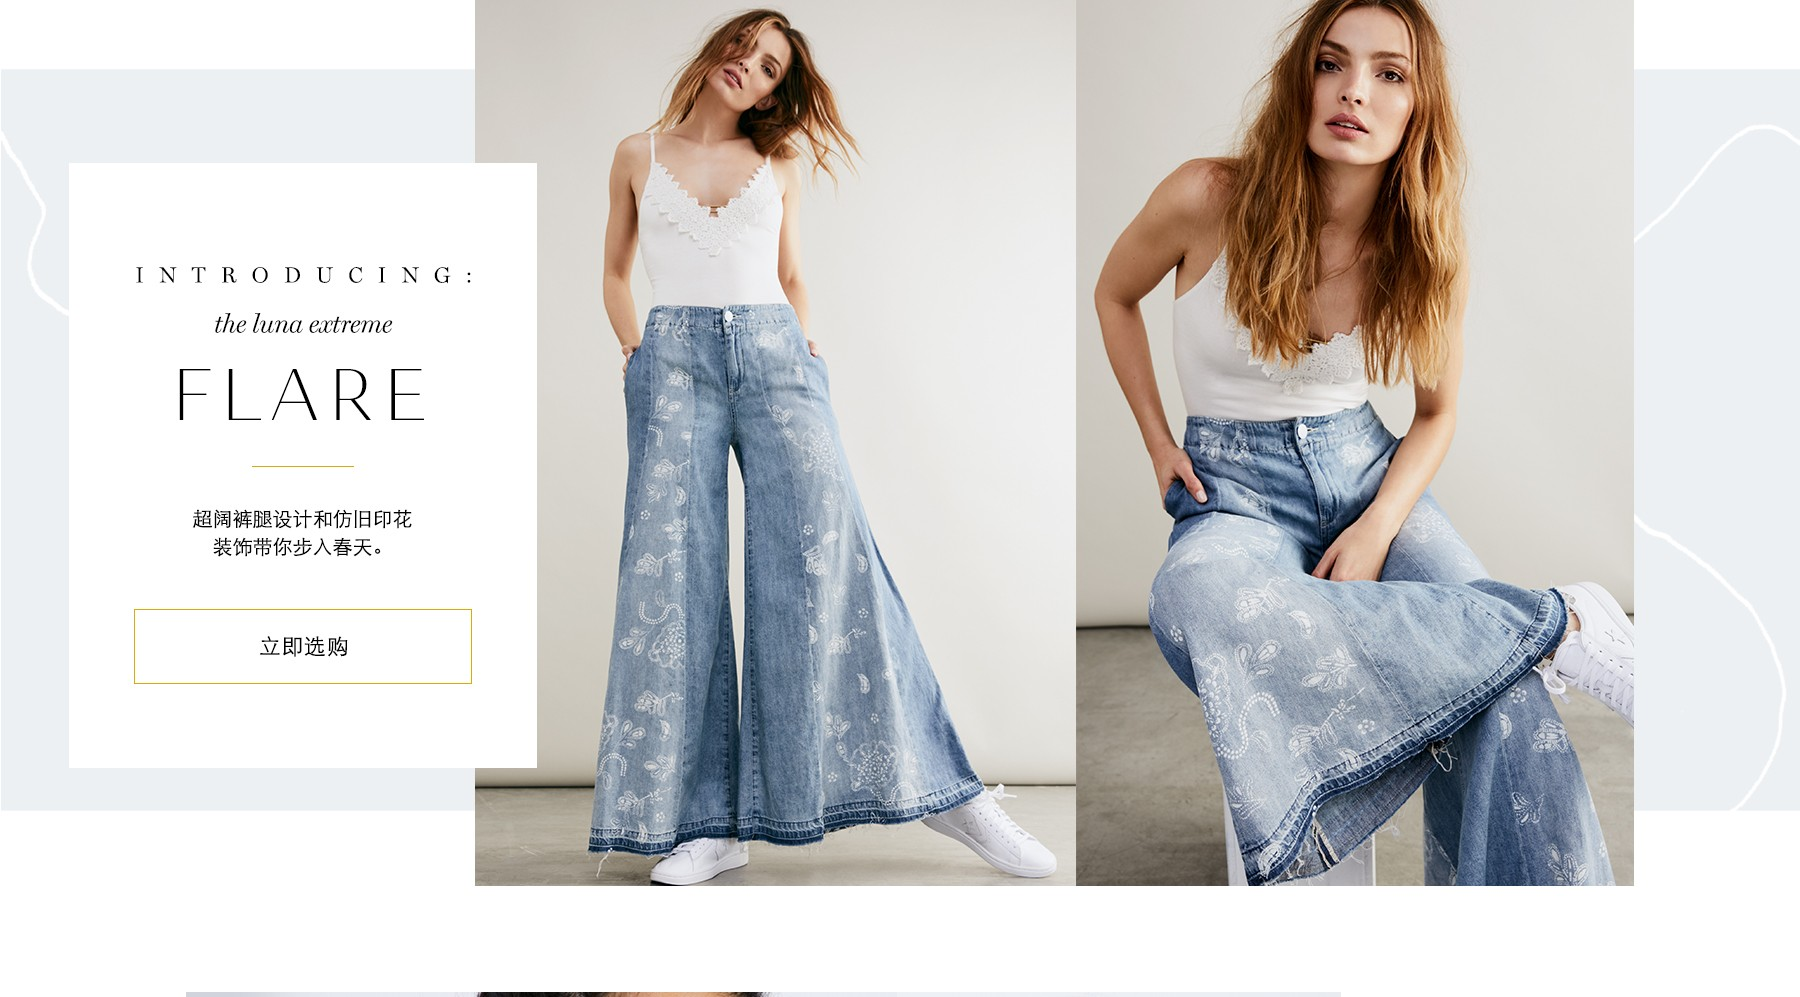 Shop Luna Extreme Flare at Free People